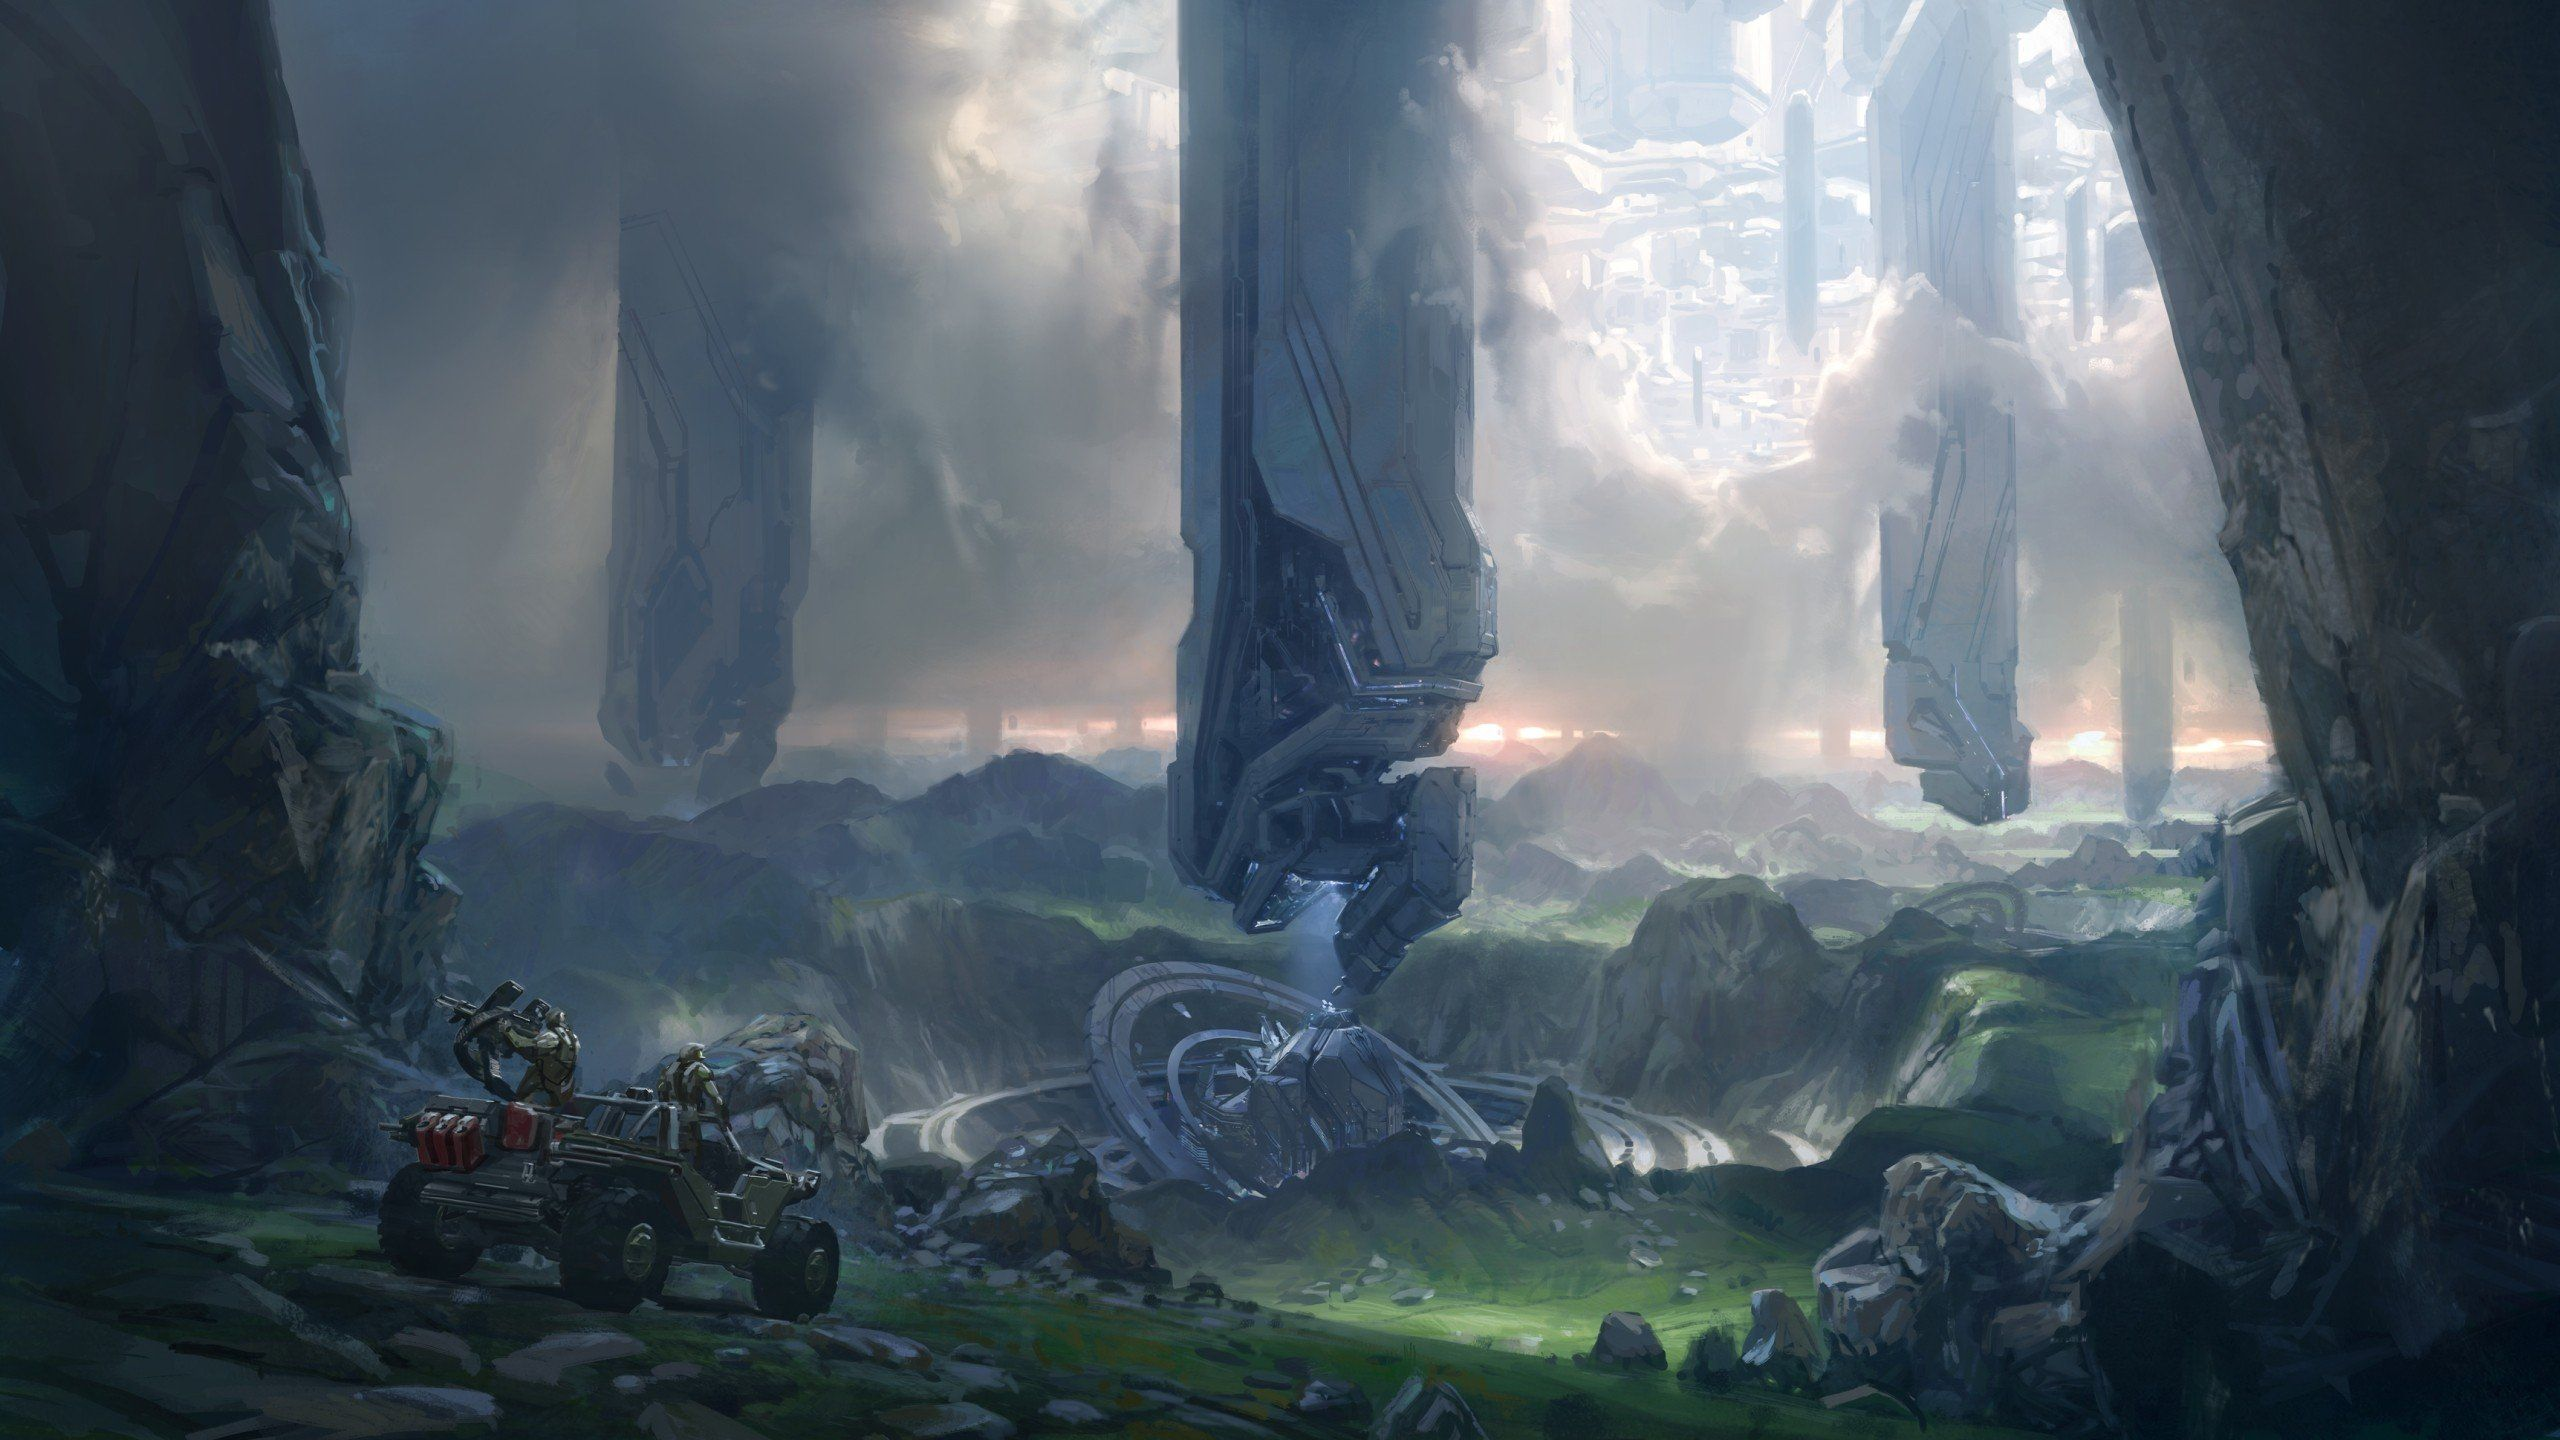 halo artwork wallpaper forerunner art design walls adorable